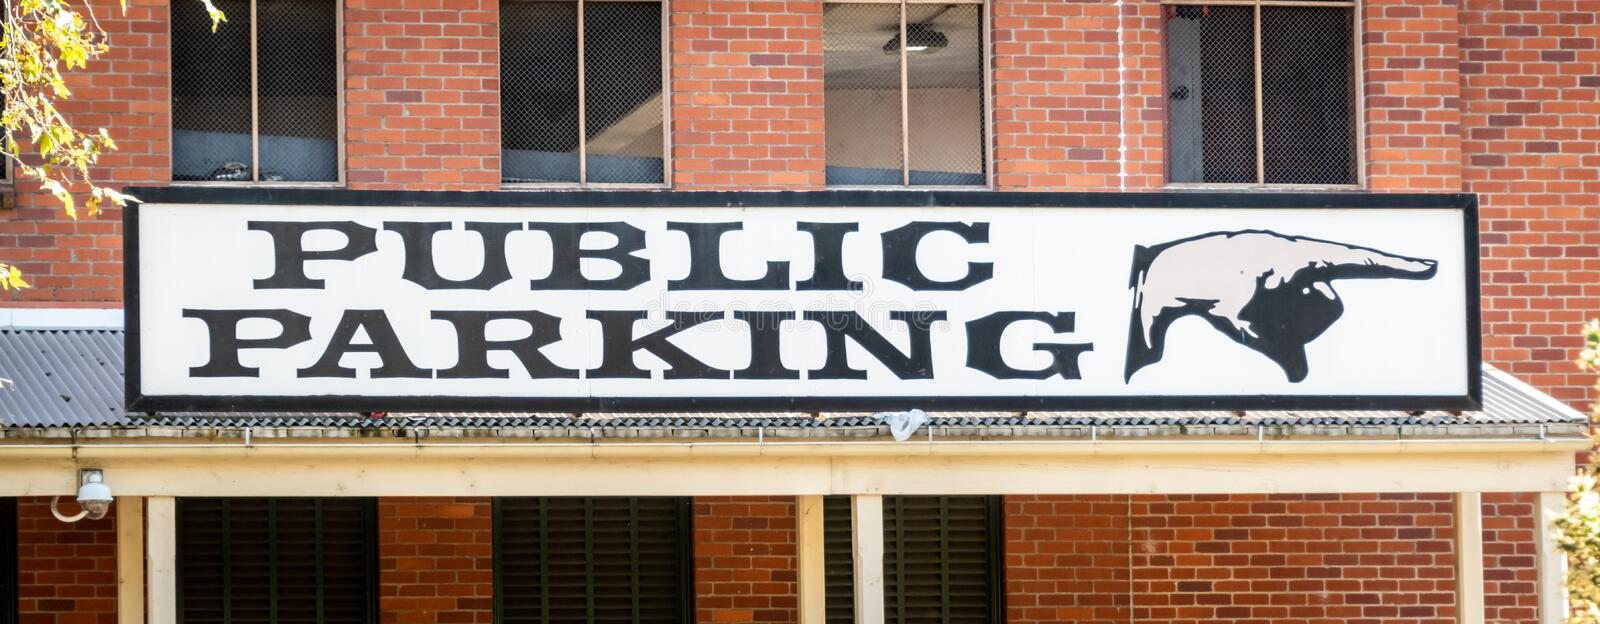 Public Parking Sign. In a city building royalty free stock photos